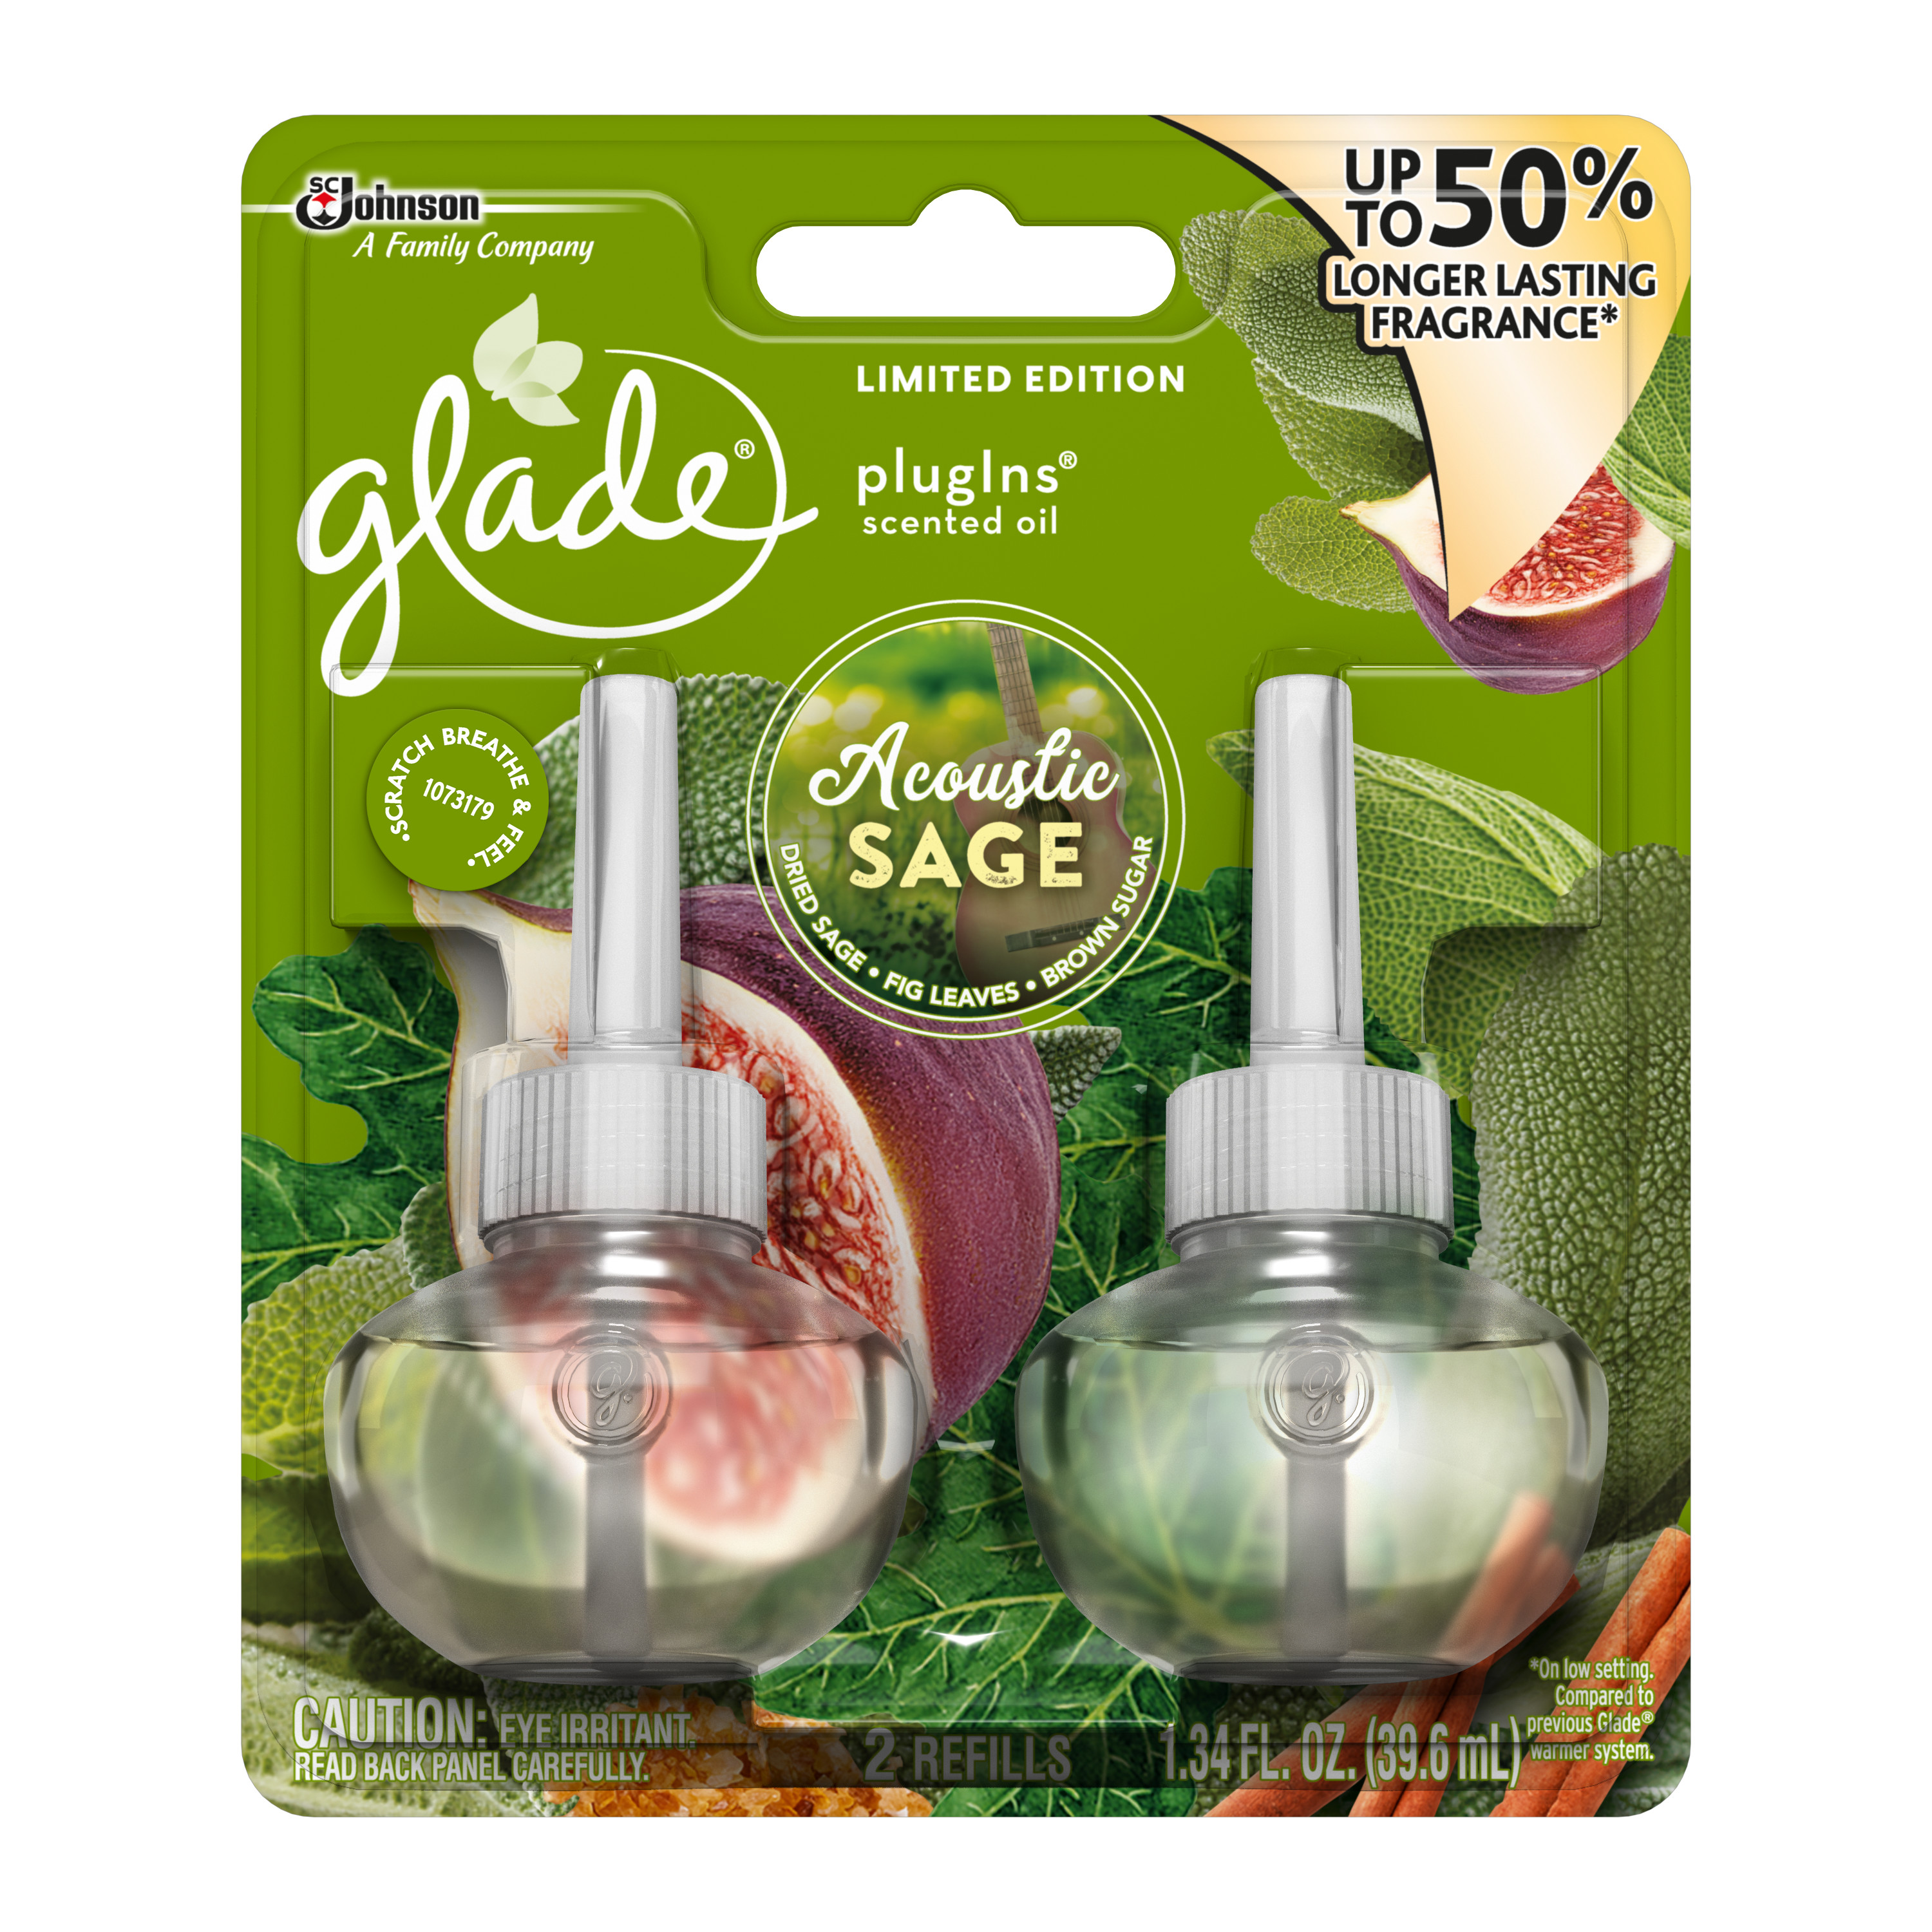 Glade PlugIns Scented Oil Air FreshenerRefill, Acoustic Sage, 1.34 fl oz, 2 ct